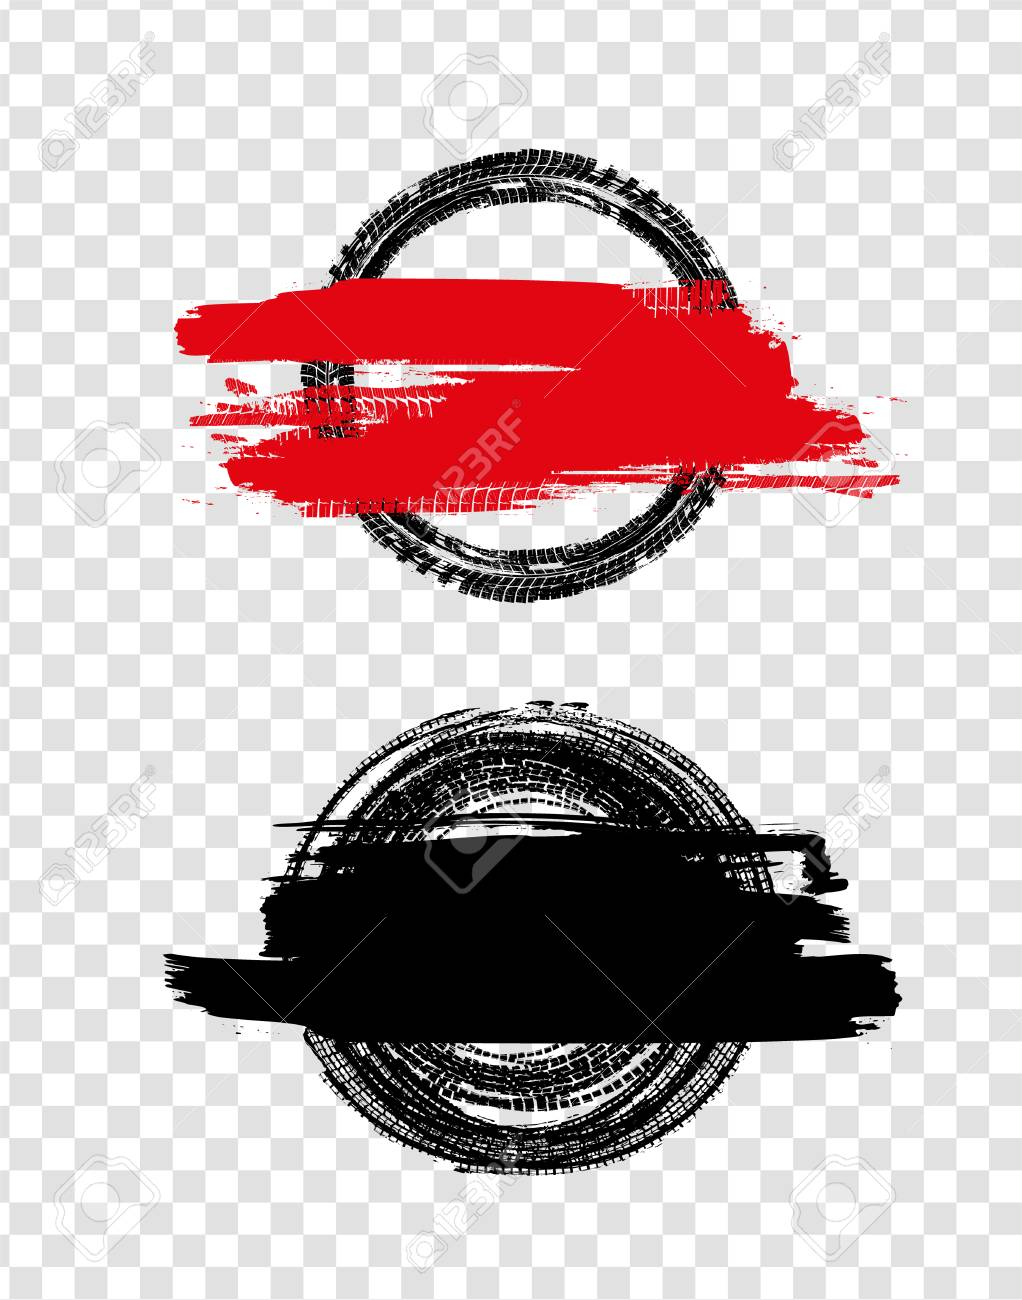 Grunge Off Road Post And Quality Stamps Automotive Element Useful Royalty Free Cliparts Vectors And Stock Illustration Image 103045192